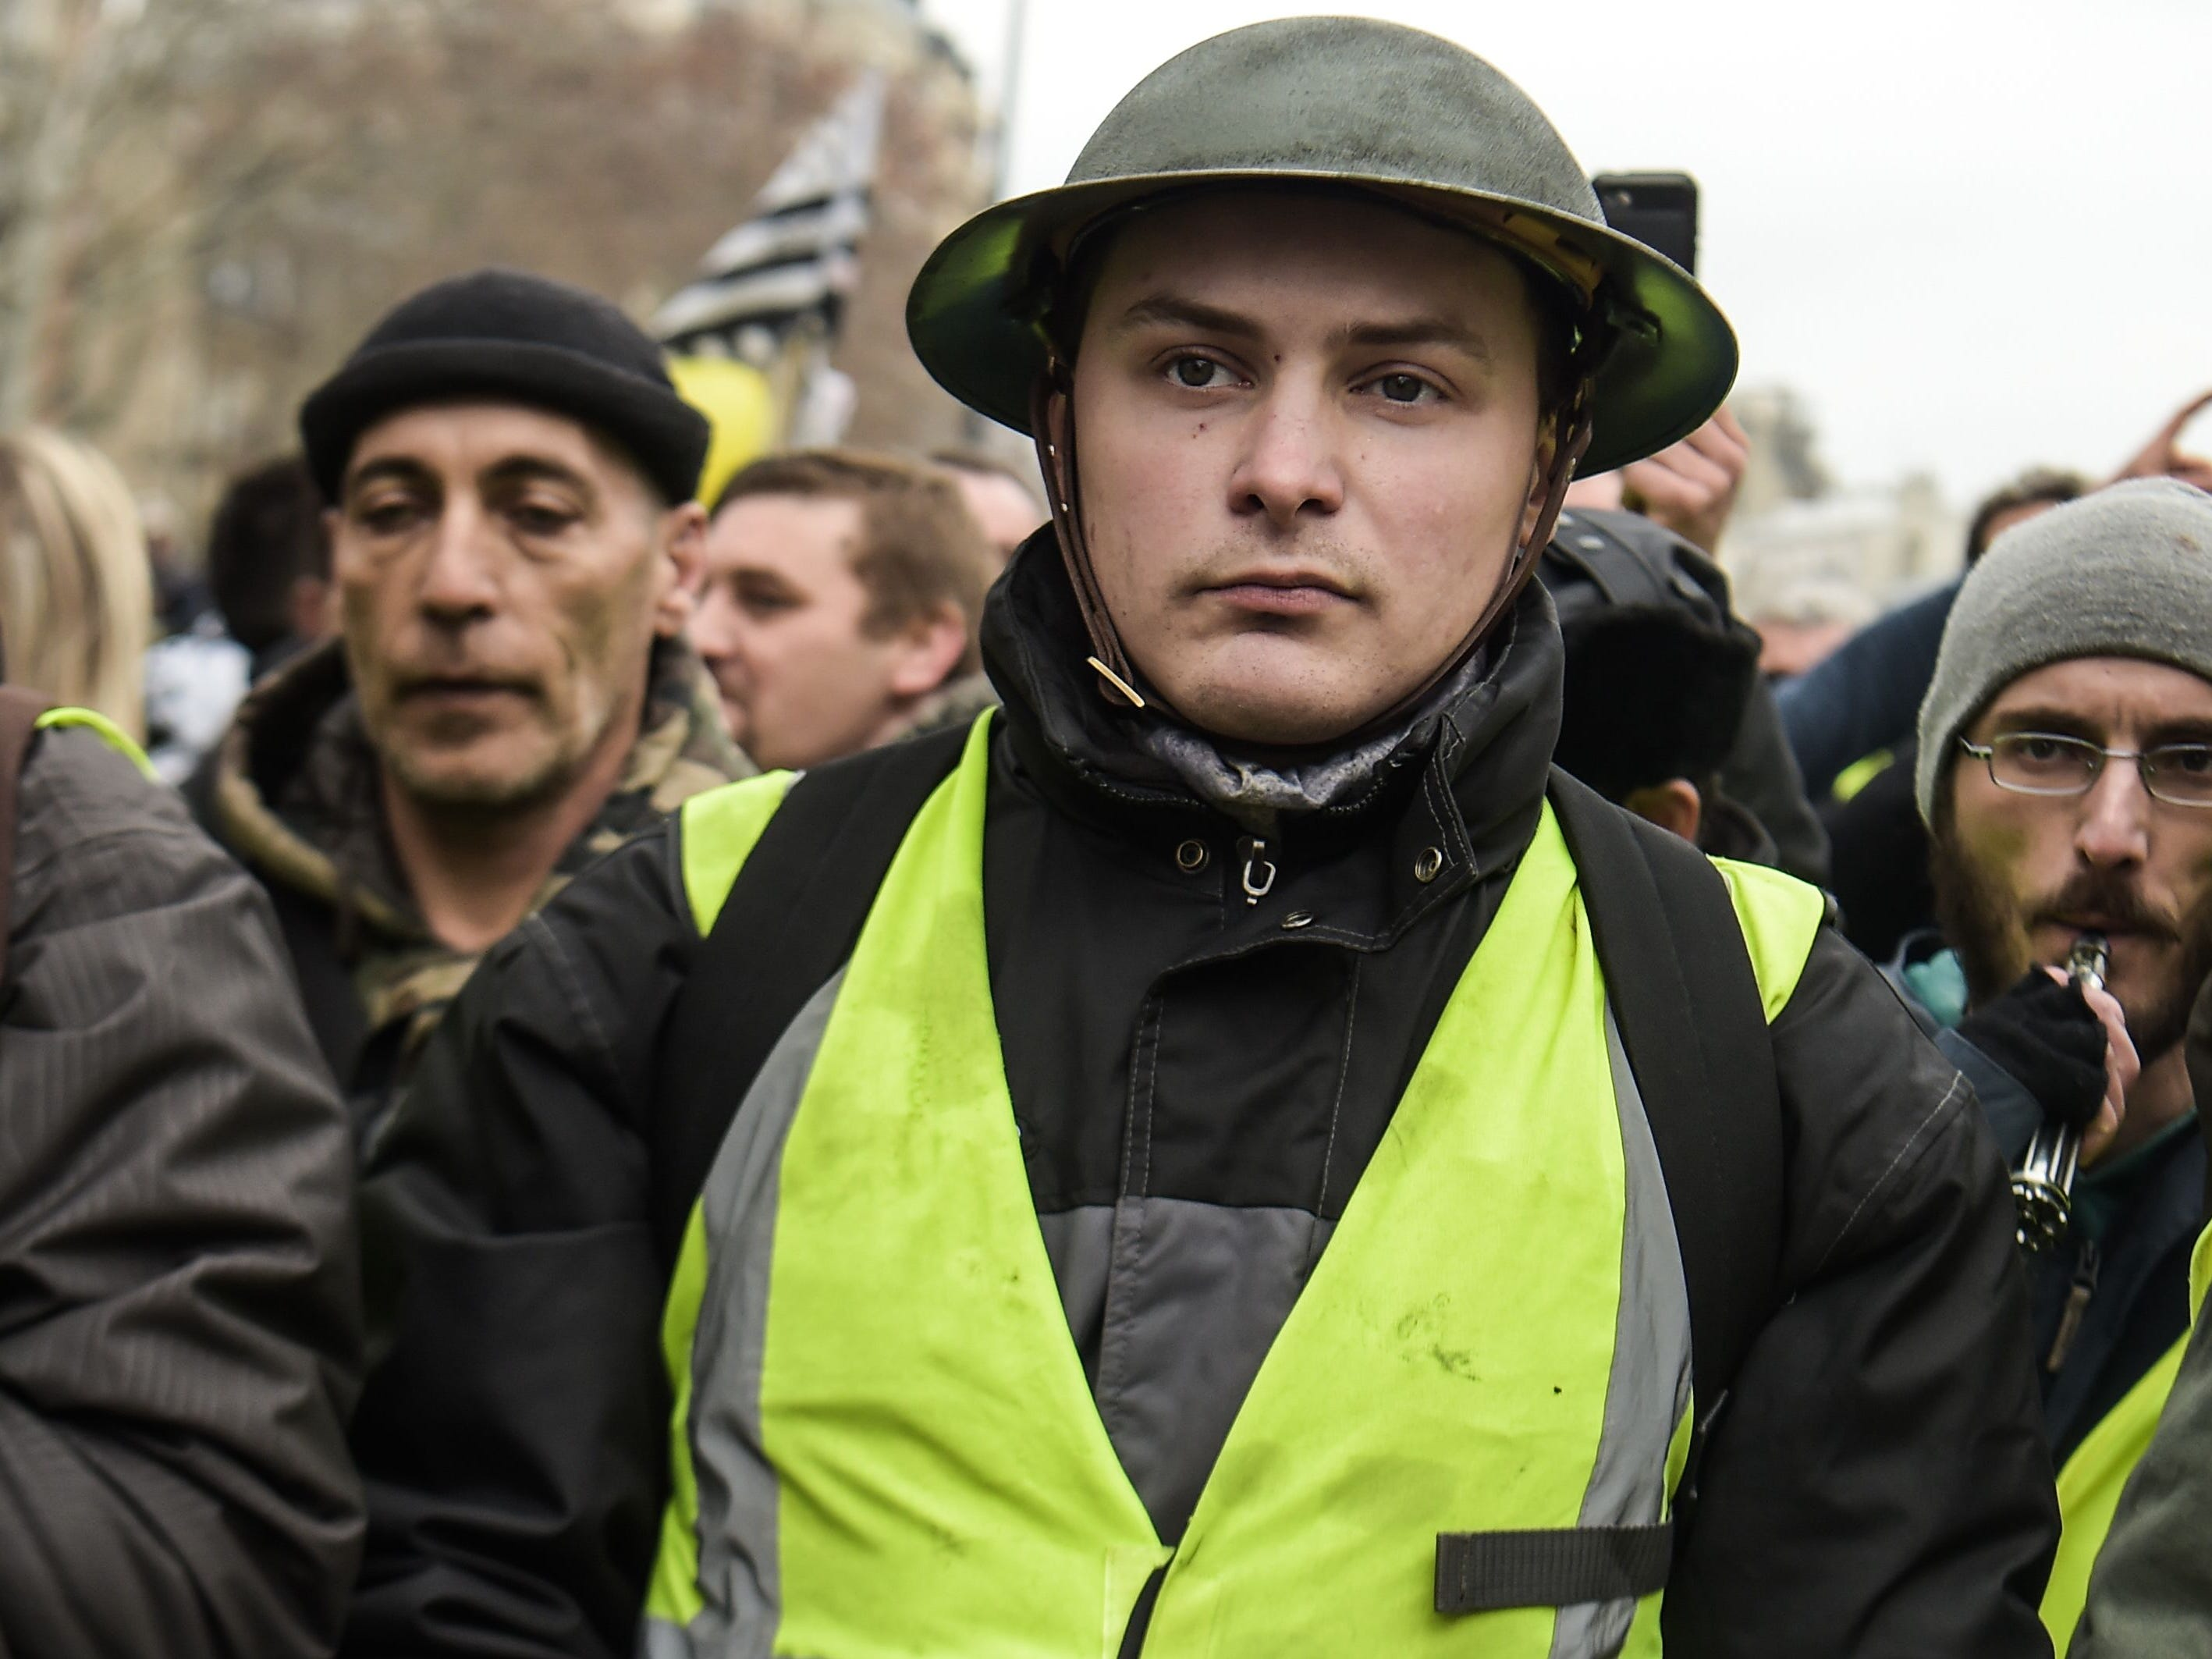 A man wearing a vintage army helmet takes part in a march on Feb. 2, 2019 in Paris, called to pacifically protest against police violence toward participants of the last three months demonstrations in France, as Yellow Vest protesters take to the streets for the 12th consecutive Saturday.